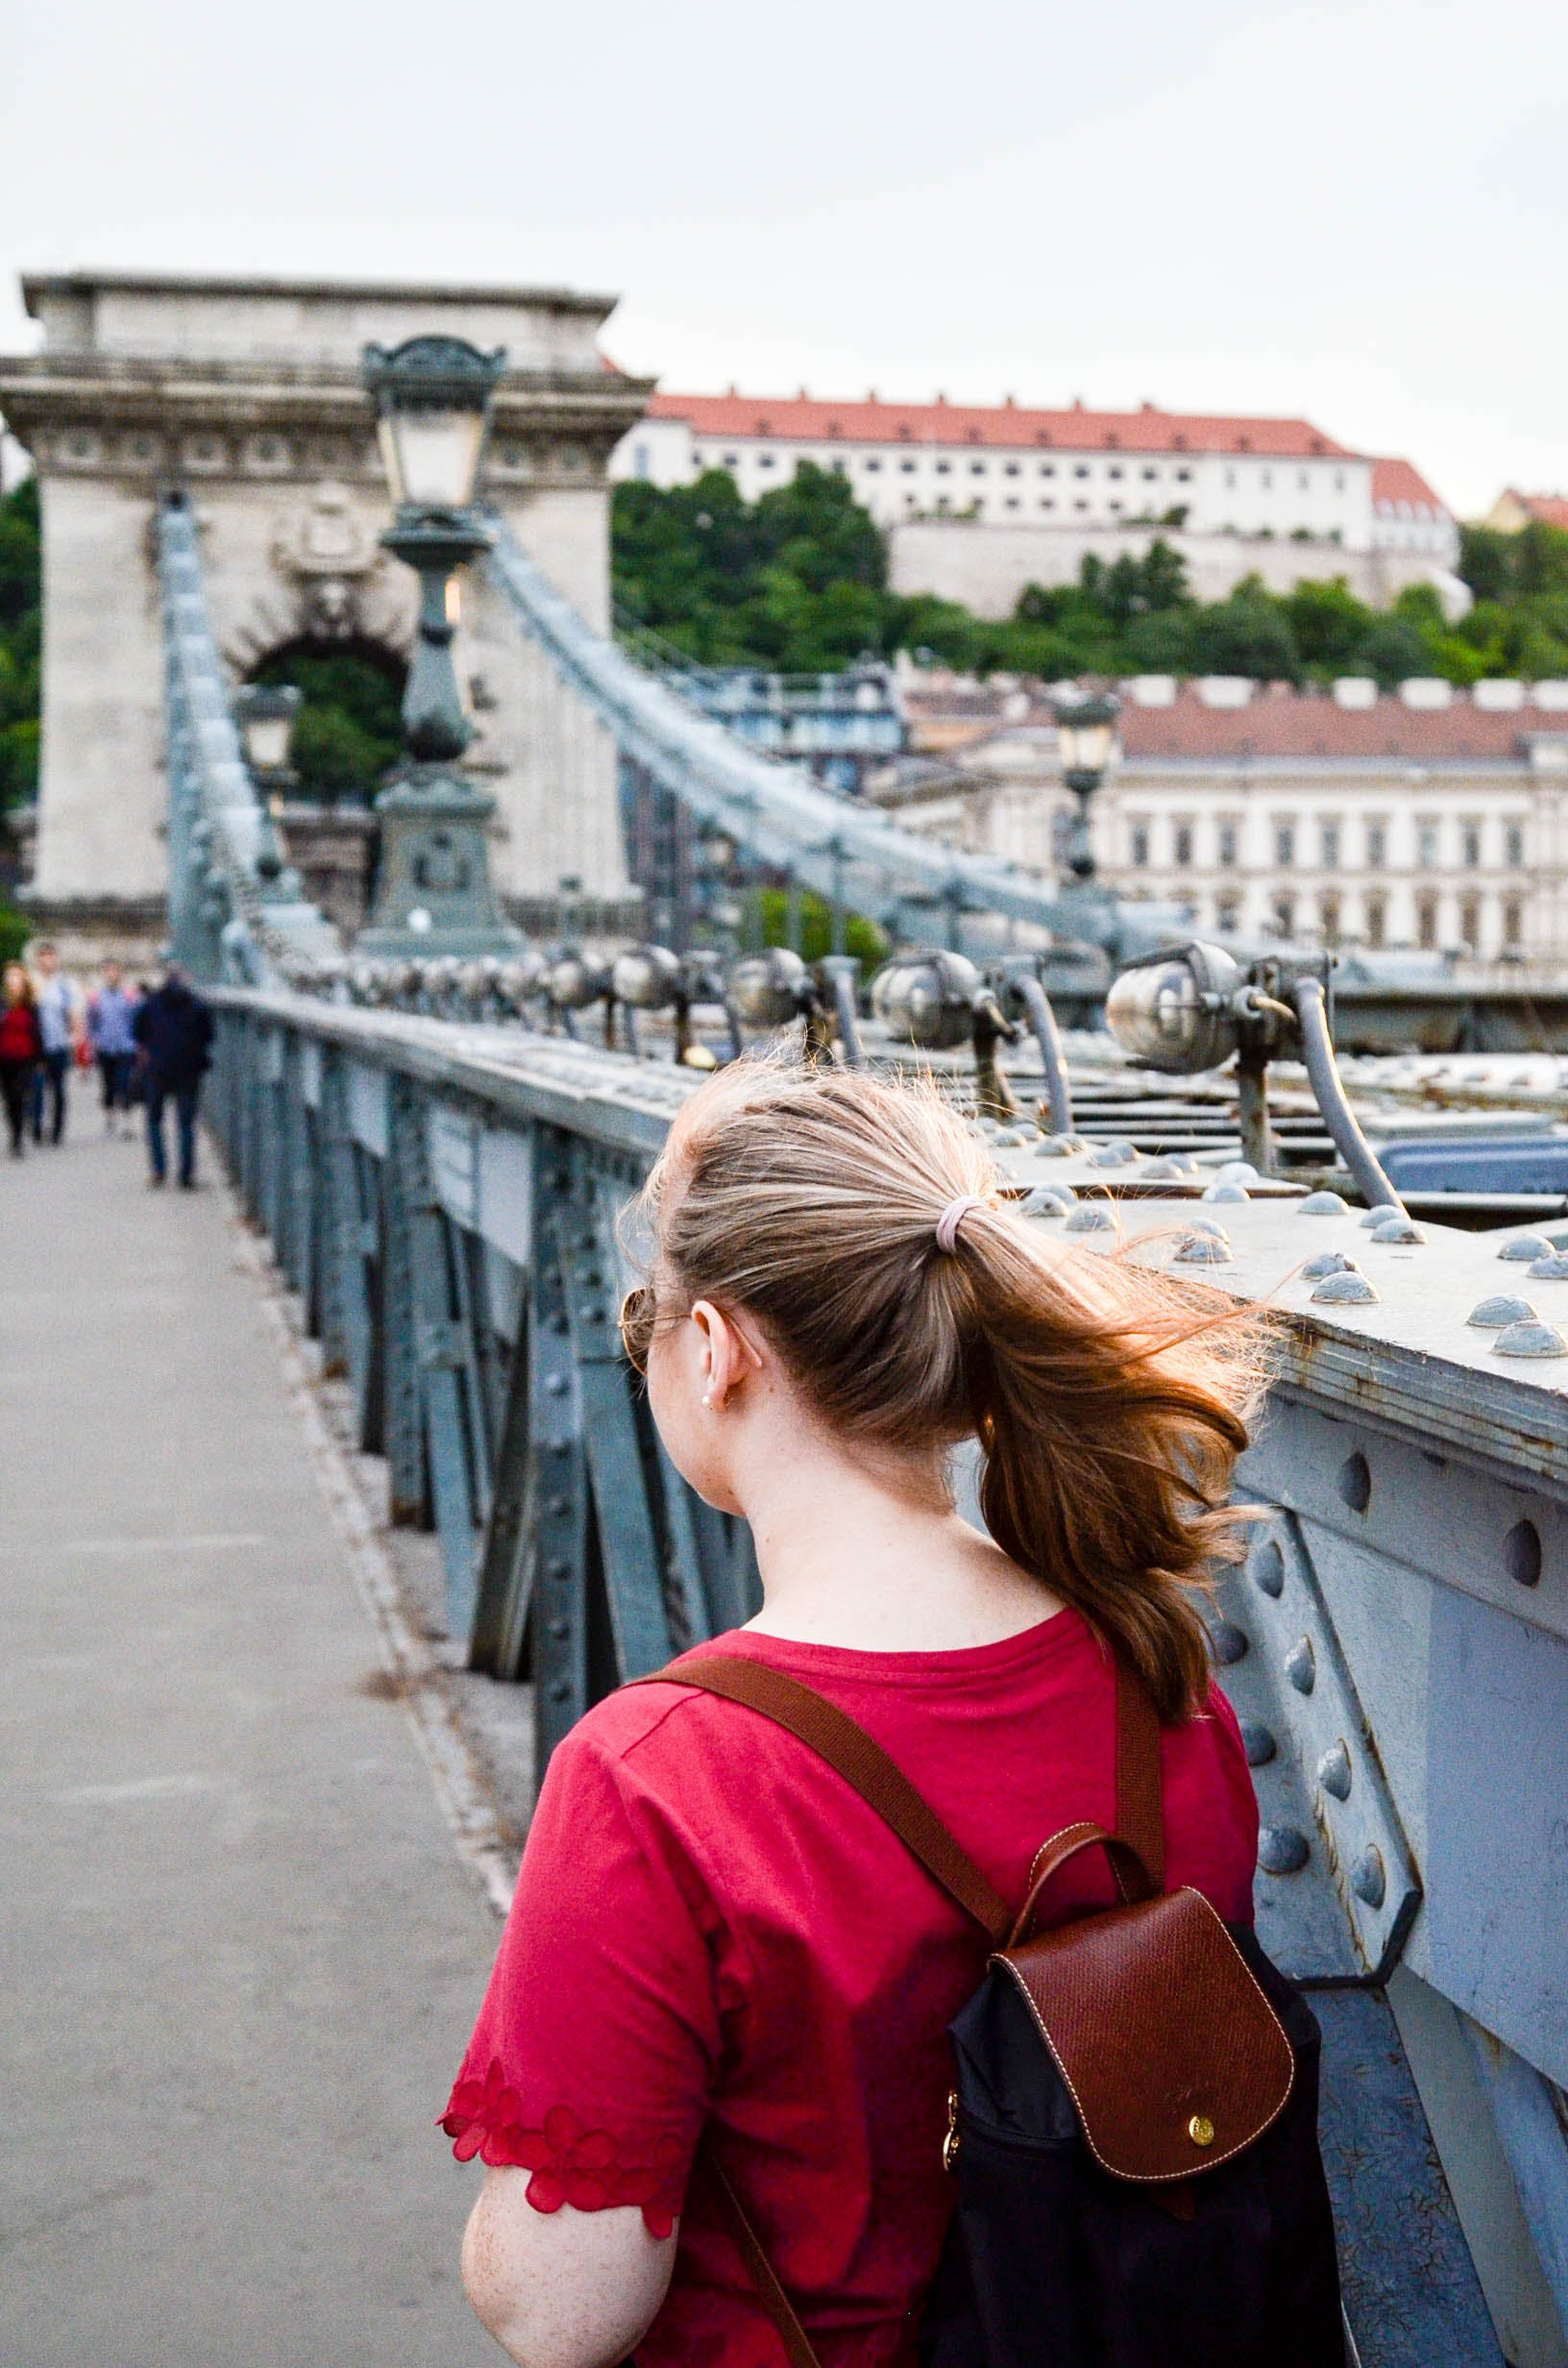 Woman Wearing Brown Leather Backpack Standing on Bridge Photo Taken